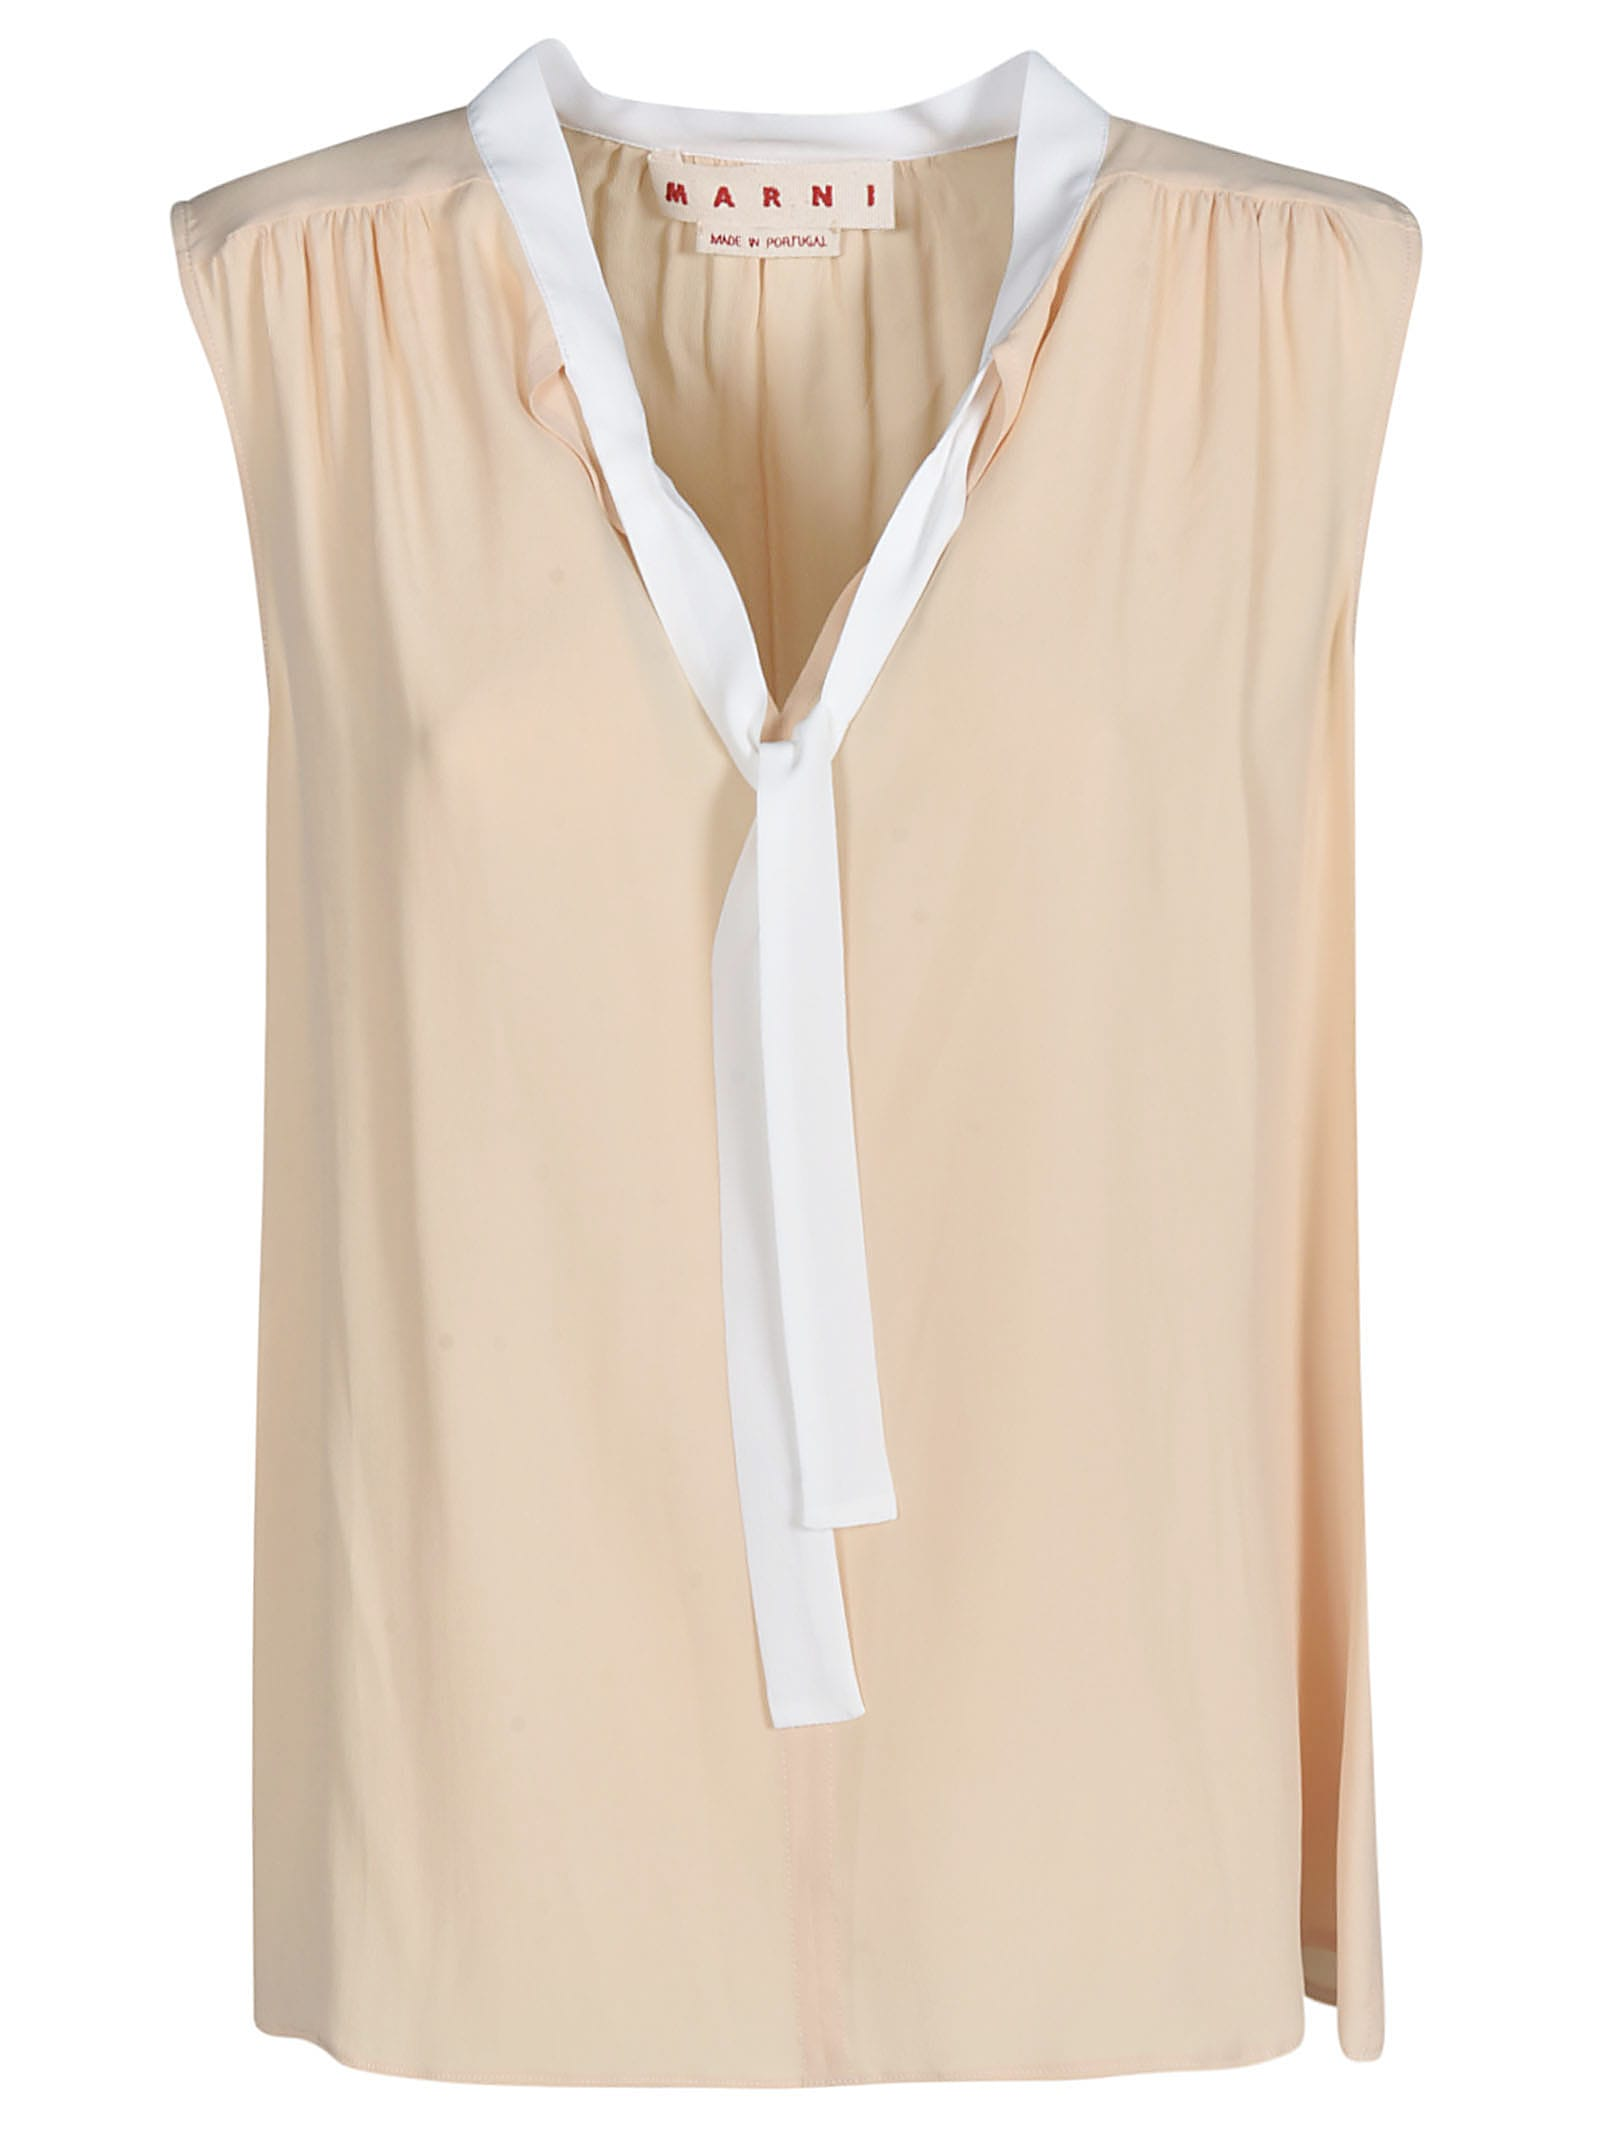 Sleeveless V-neck Top from Marni